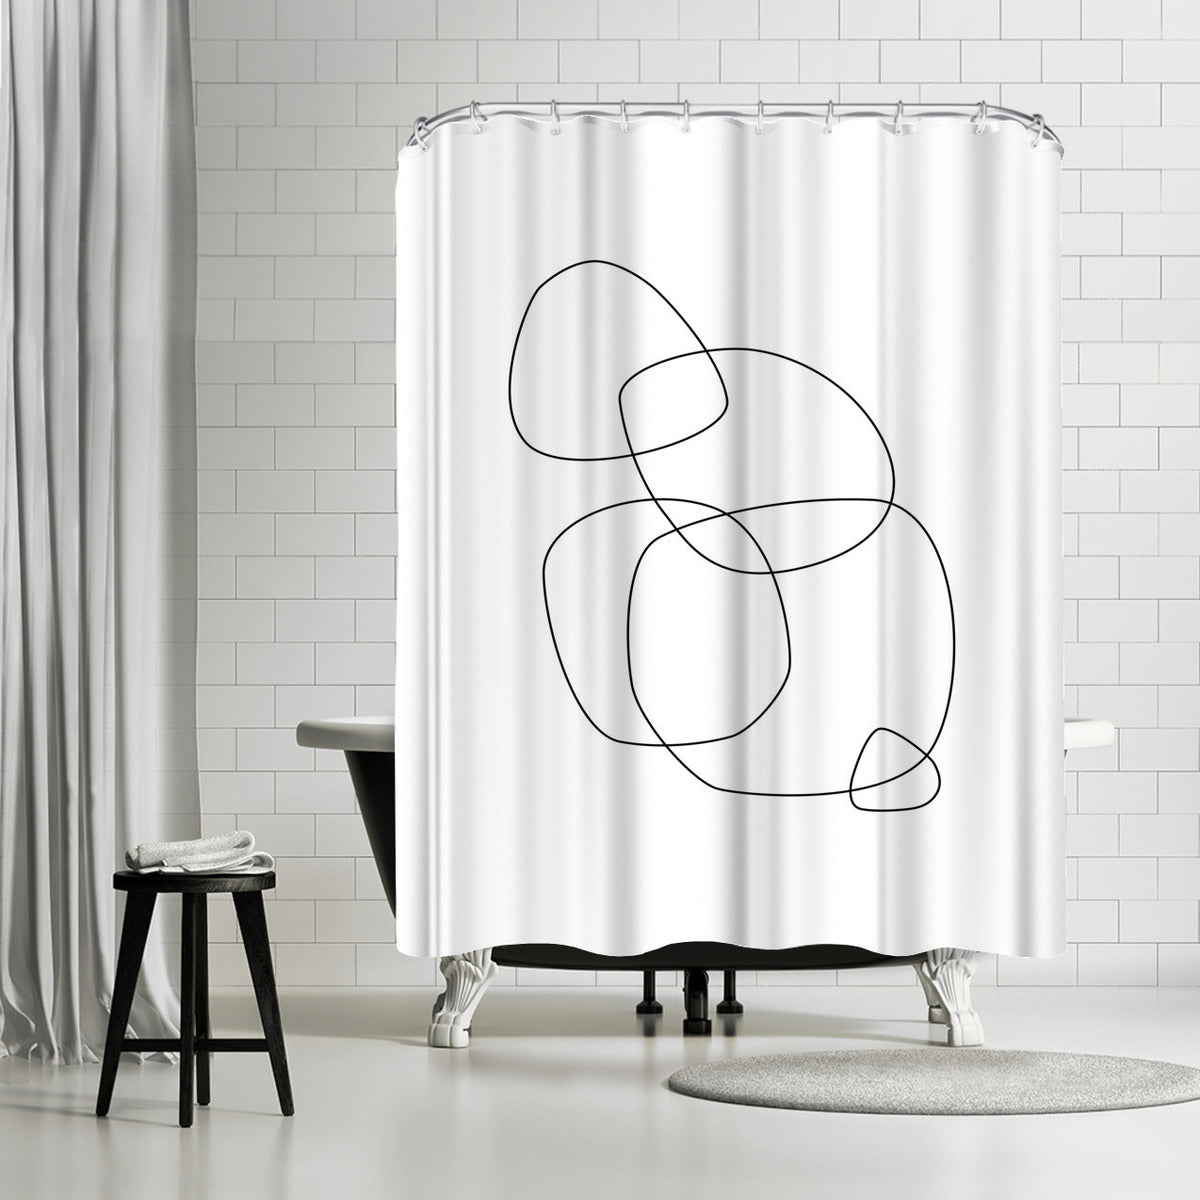 Minimalist by Explicit Design Shower Curtain -  - Americanflat